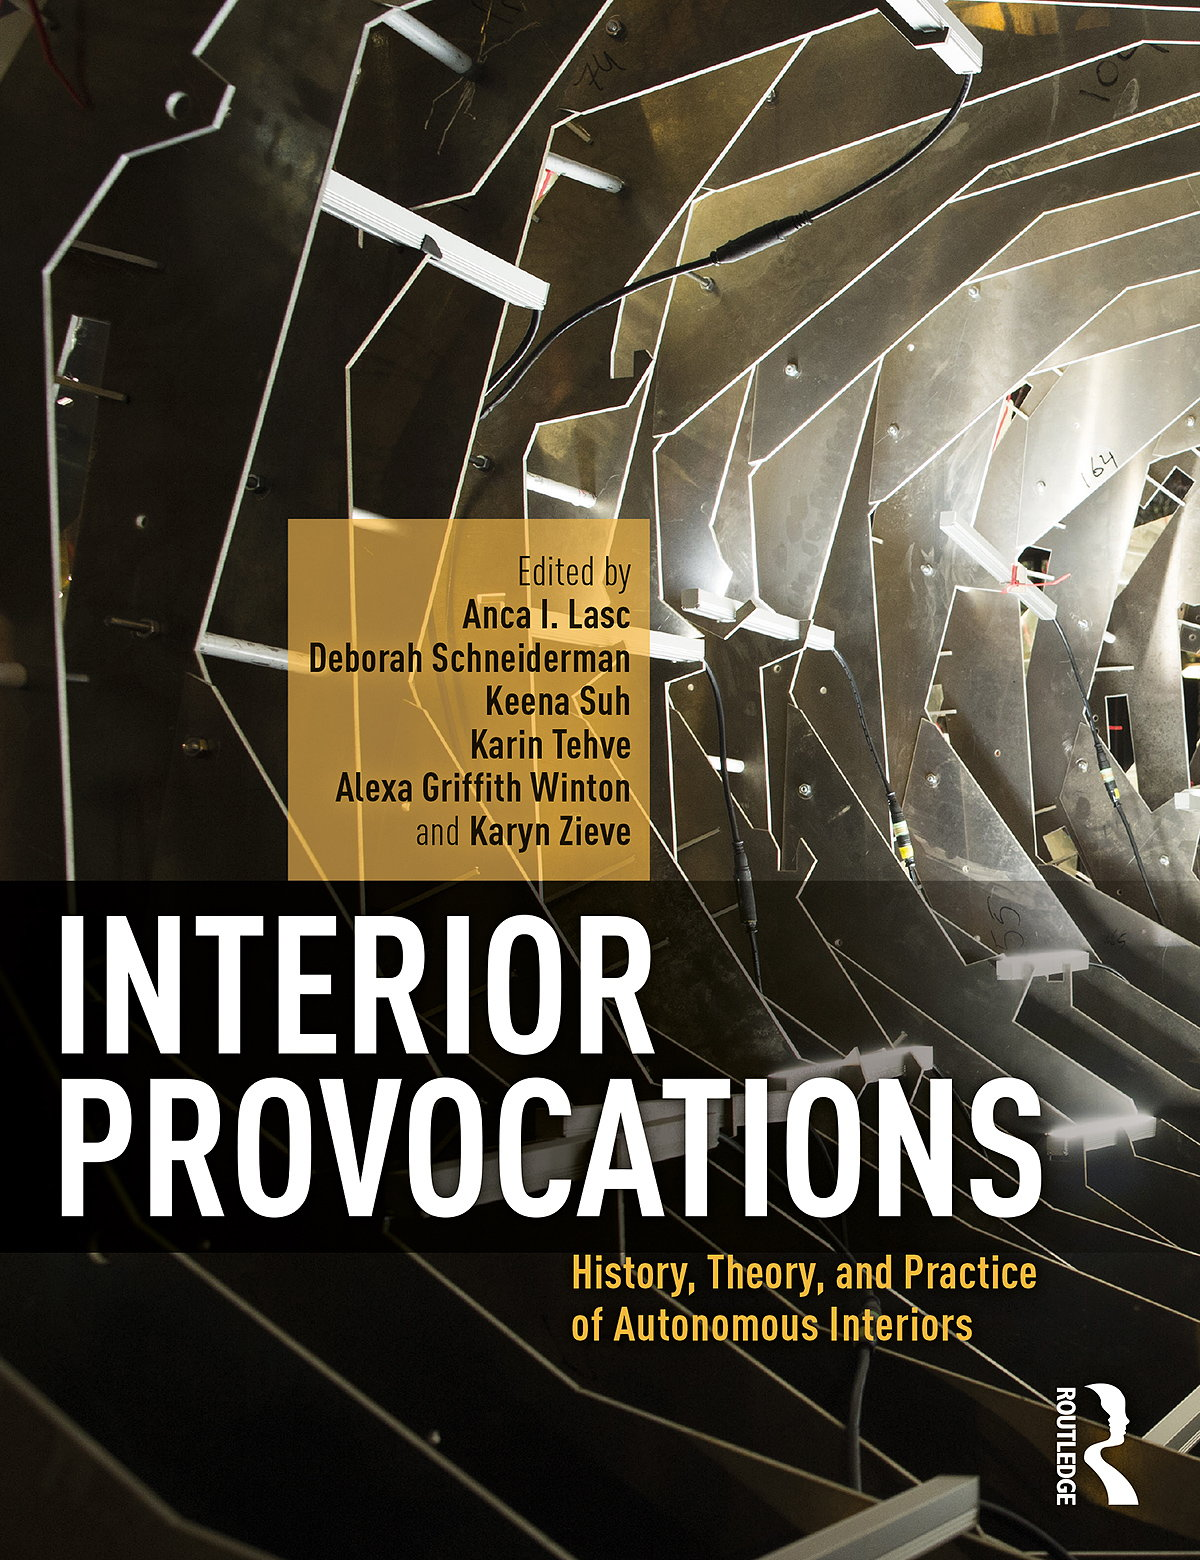 Interior Provocations - History, Theory, and Practice of Autonomous Interiors